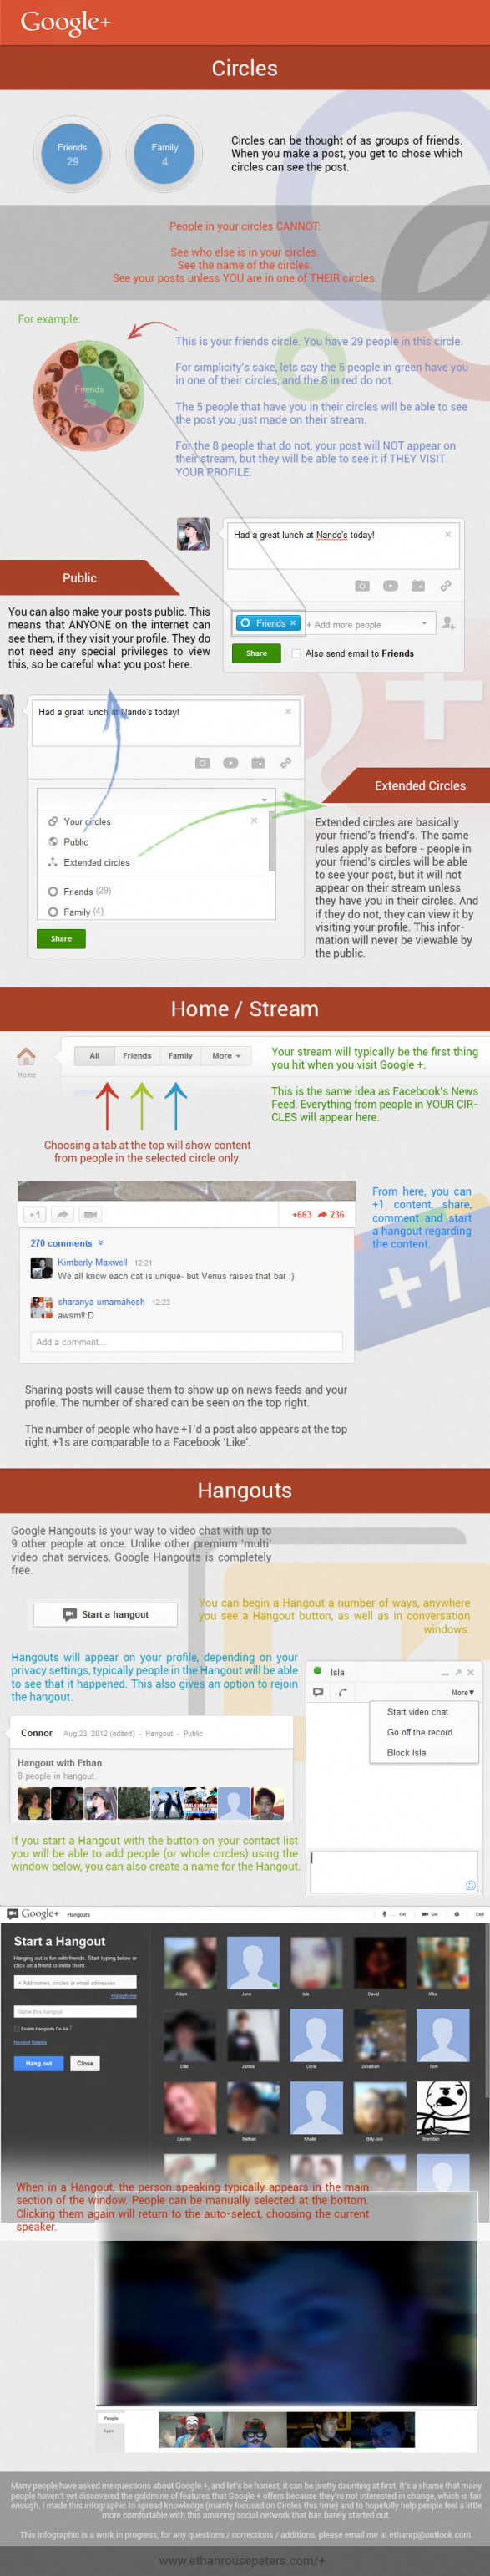 Google Plus Circles tutorial